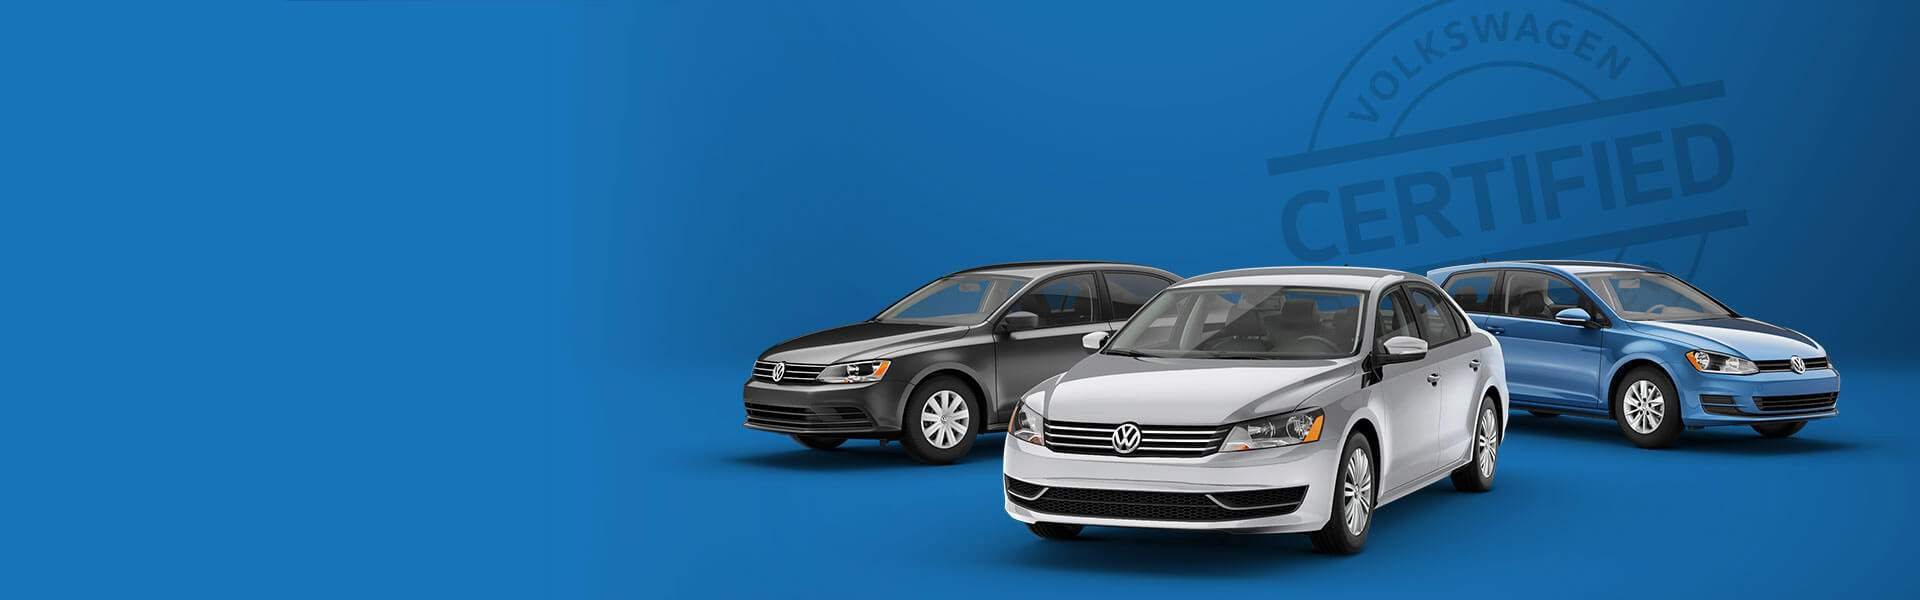 Volkswagen Certified Pre-Owned in Kingston, NY